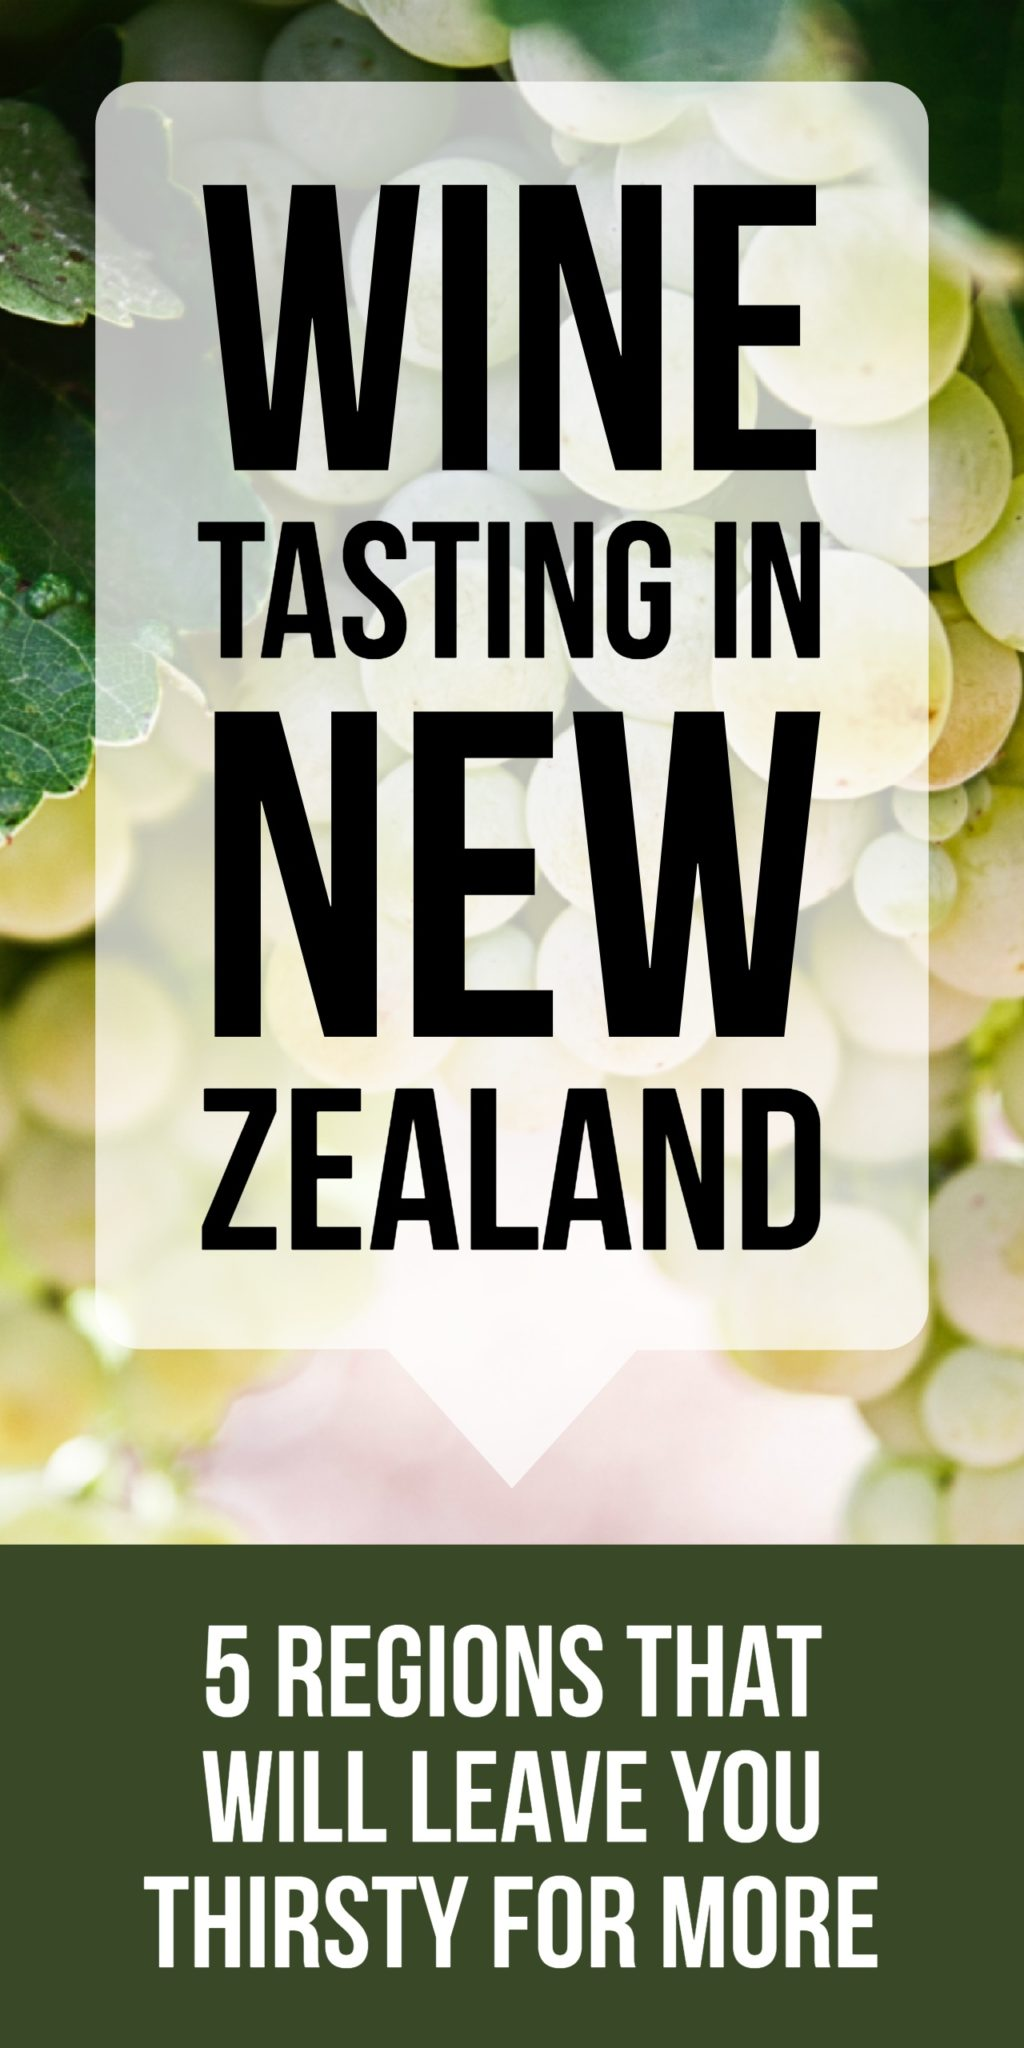 As one of the world's top twenty wine producers, New Zealand has no shortage of amazing wine regions, vineyards, and wineries to explore. Discover some of the best wine tasting spots across NZ's North and South Islands.